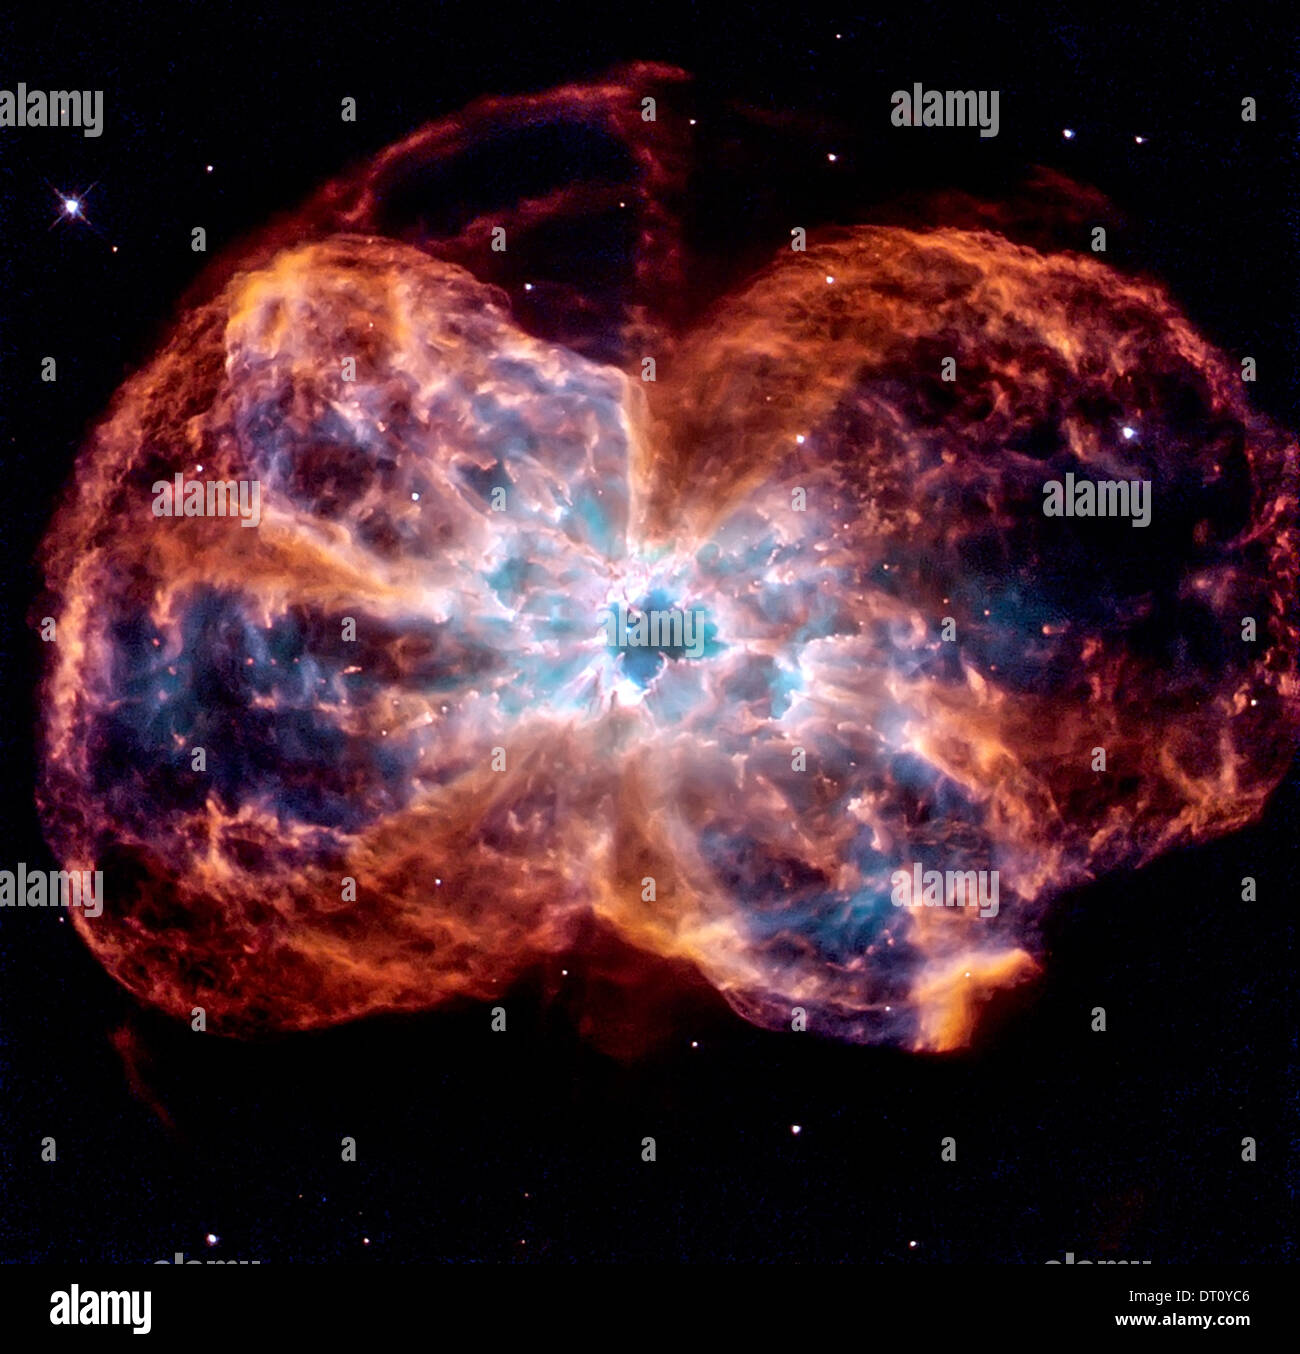 Star ending its life by casting off its outer layers of gas, which formed a cocoon around the star's remaining core. Stock Photo